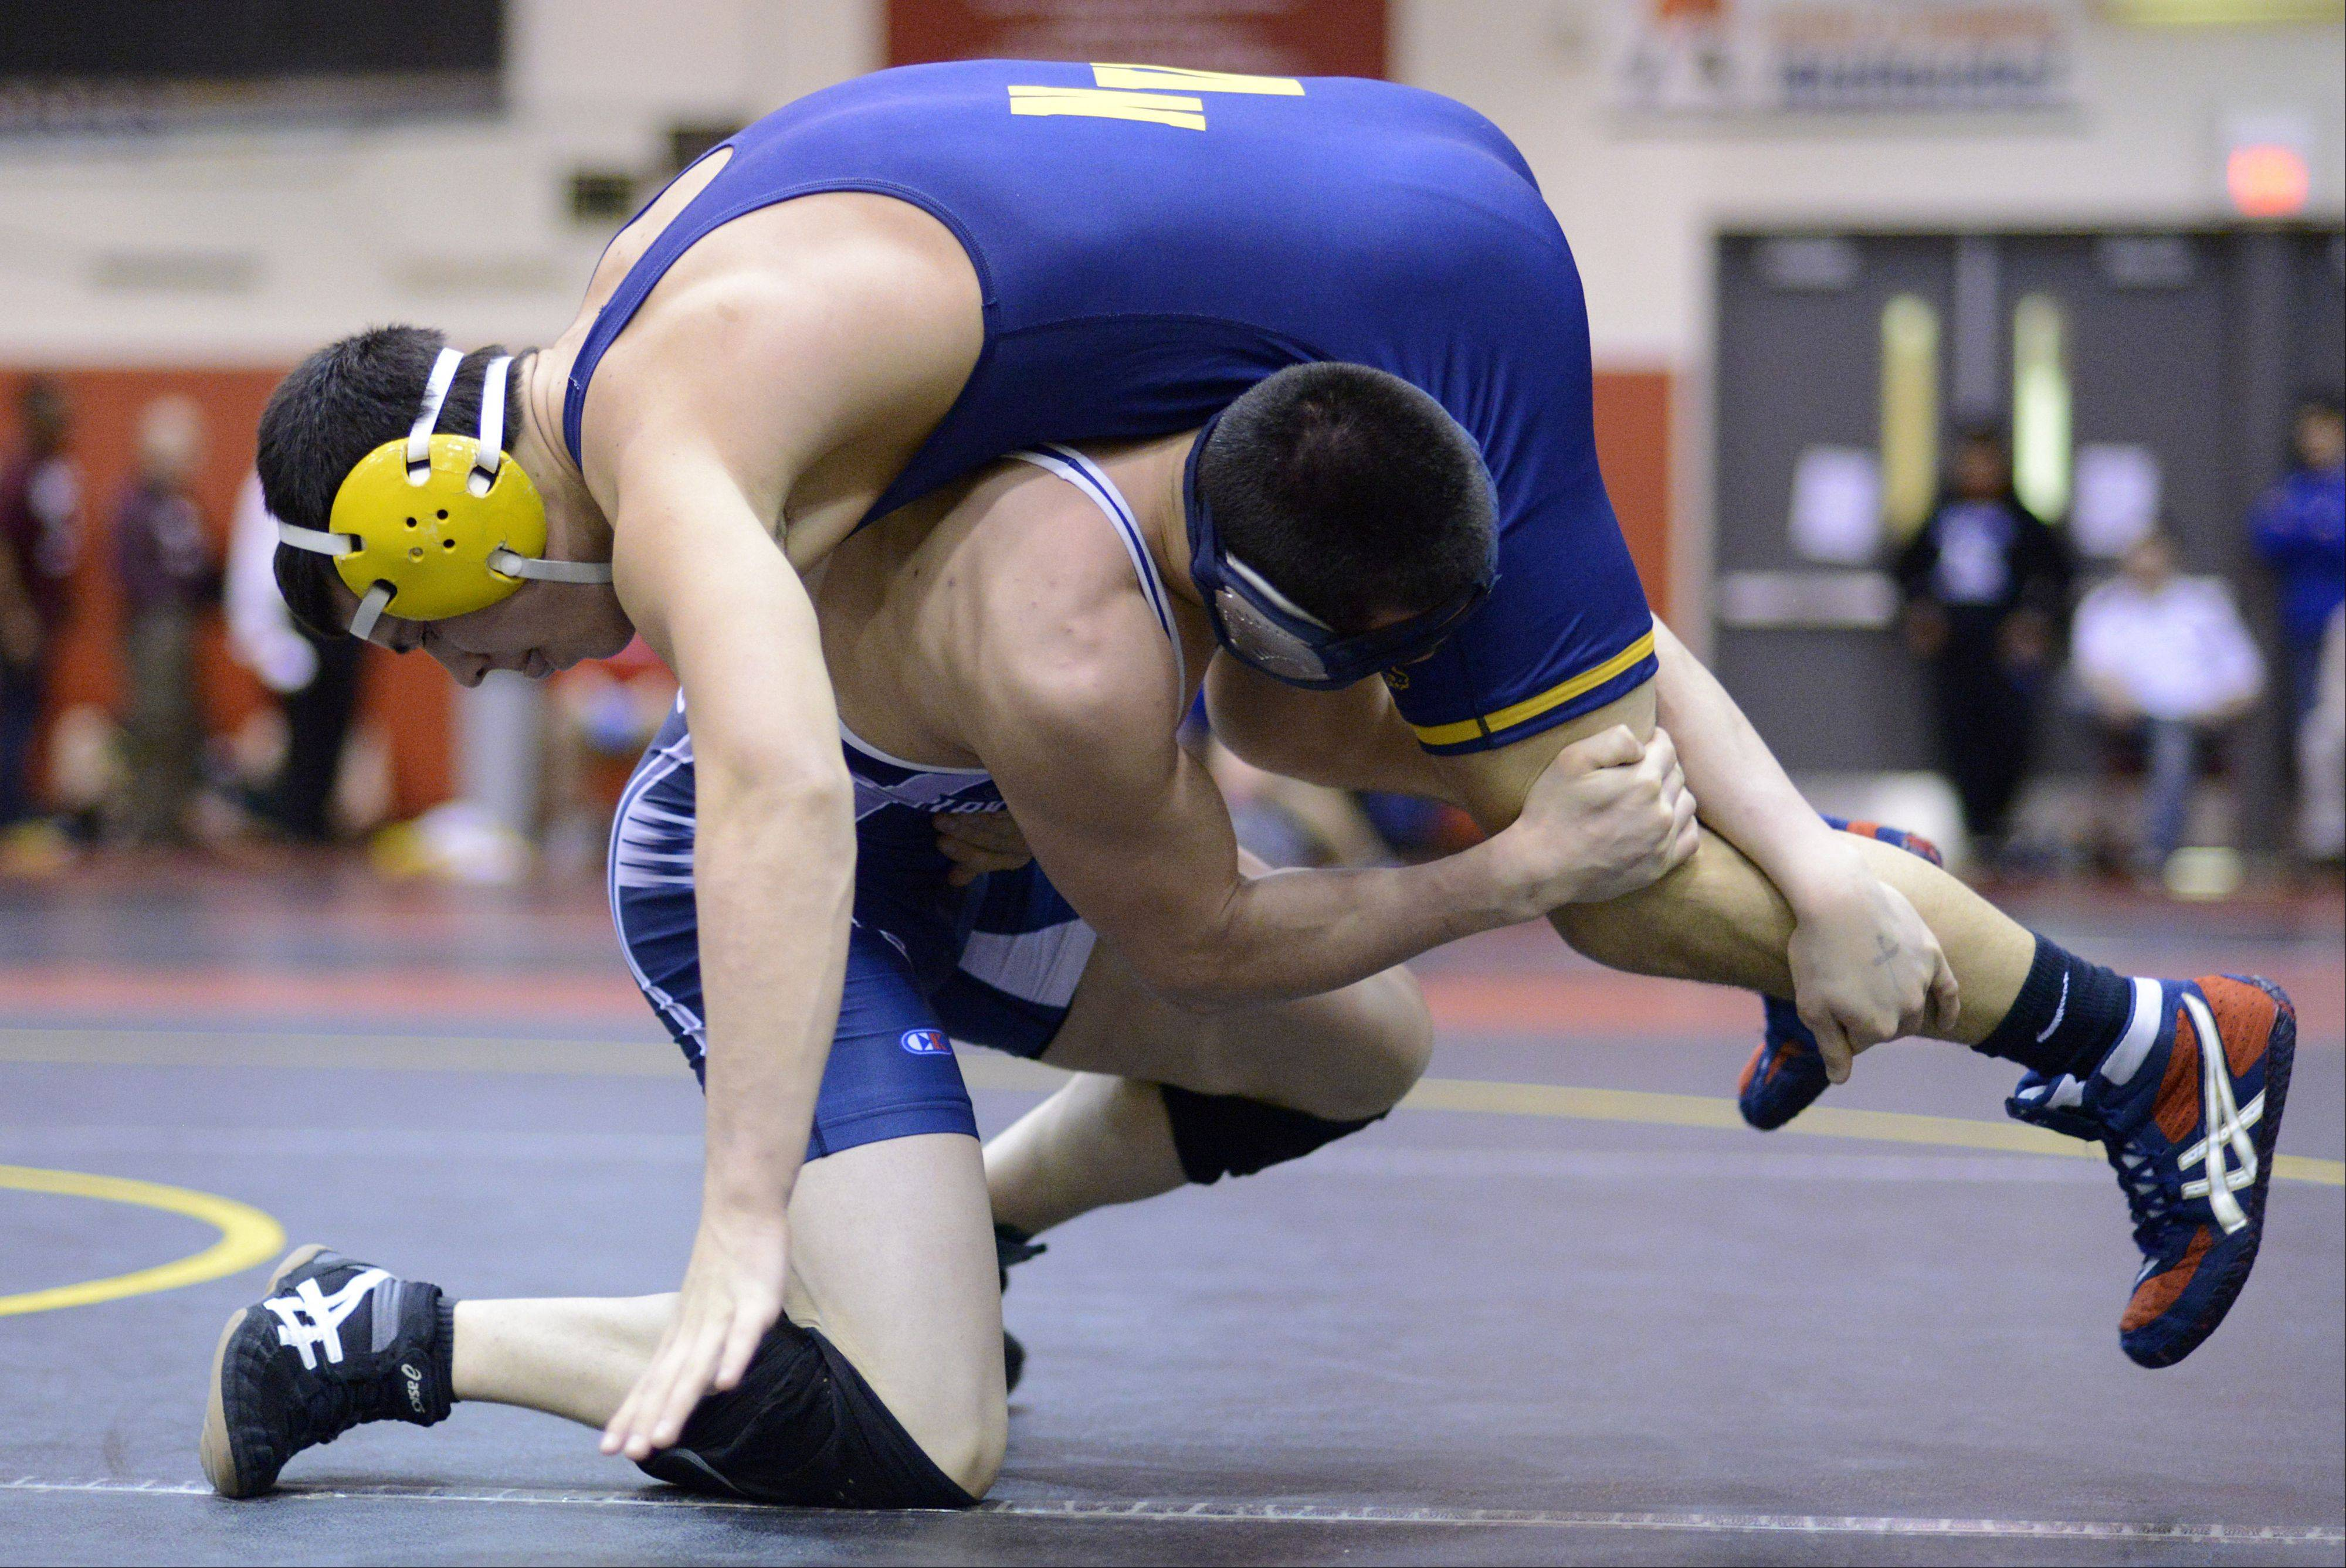 Neuqua Valley's Brent Lindenman and Lake Park's Henry Stoever compete in the 170-pound match of the Upstate Eight mega conference on Saturday. Stoever took the win.